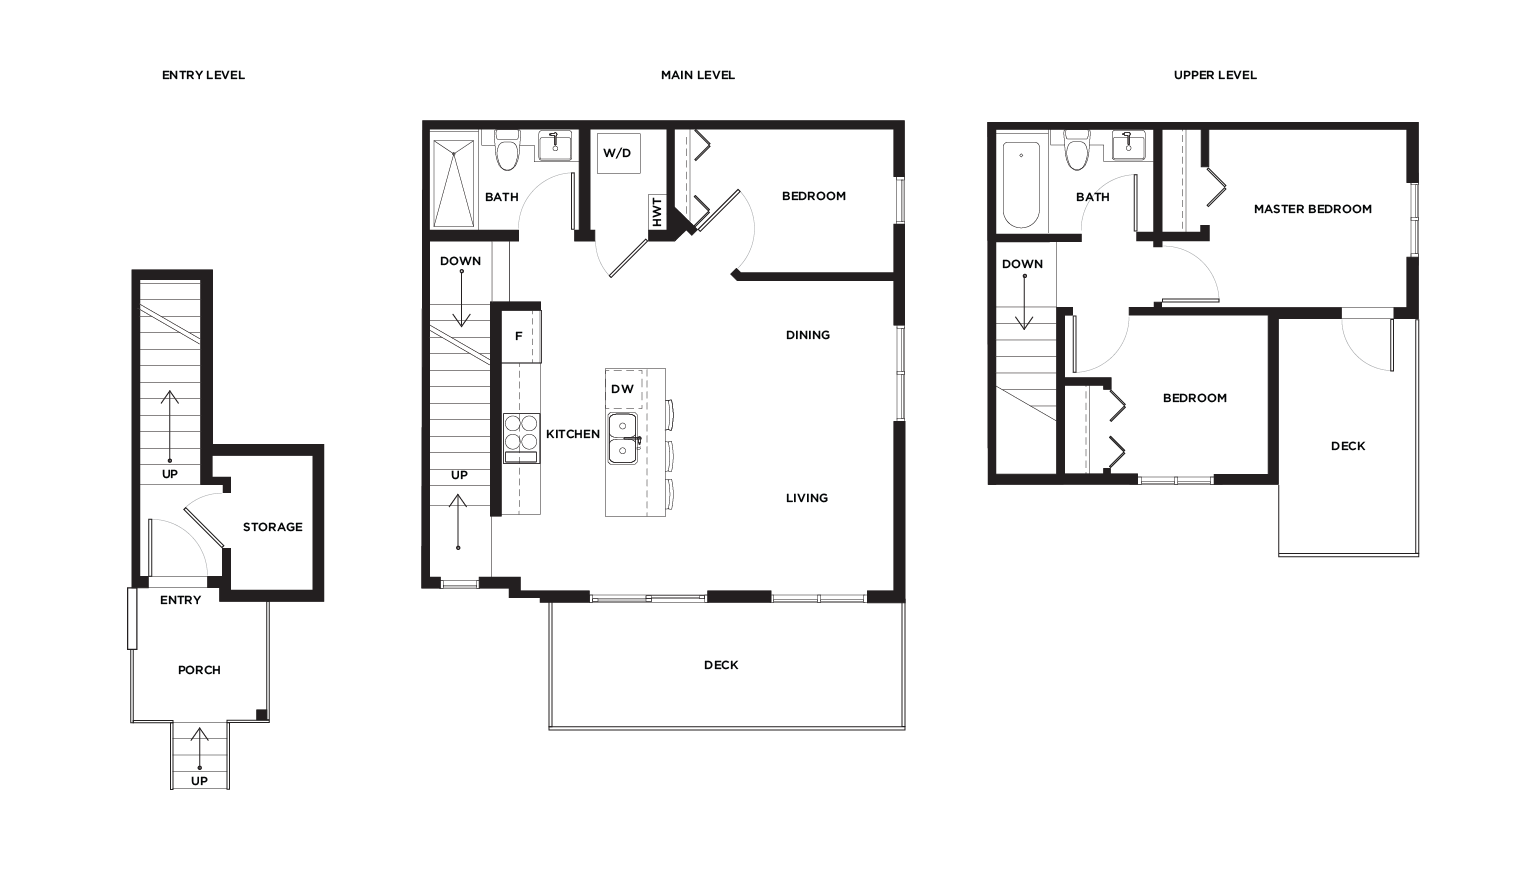 Ward A1/2 upper level floor plan for Vicini Homes Vancouver townhouses.